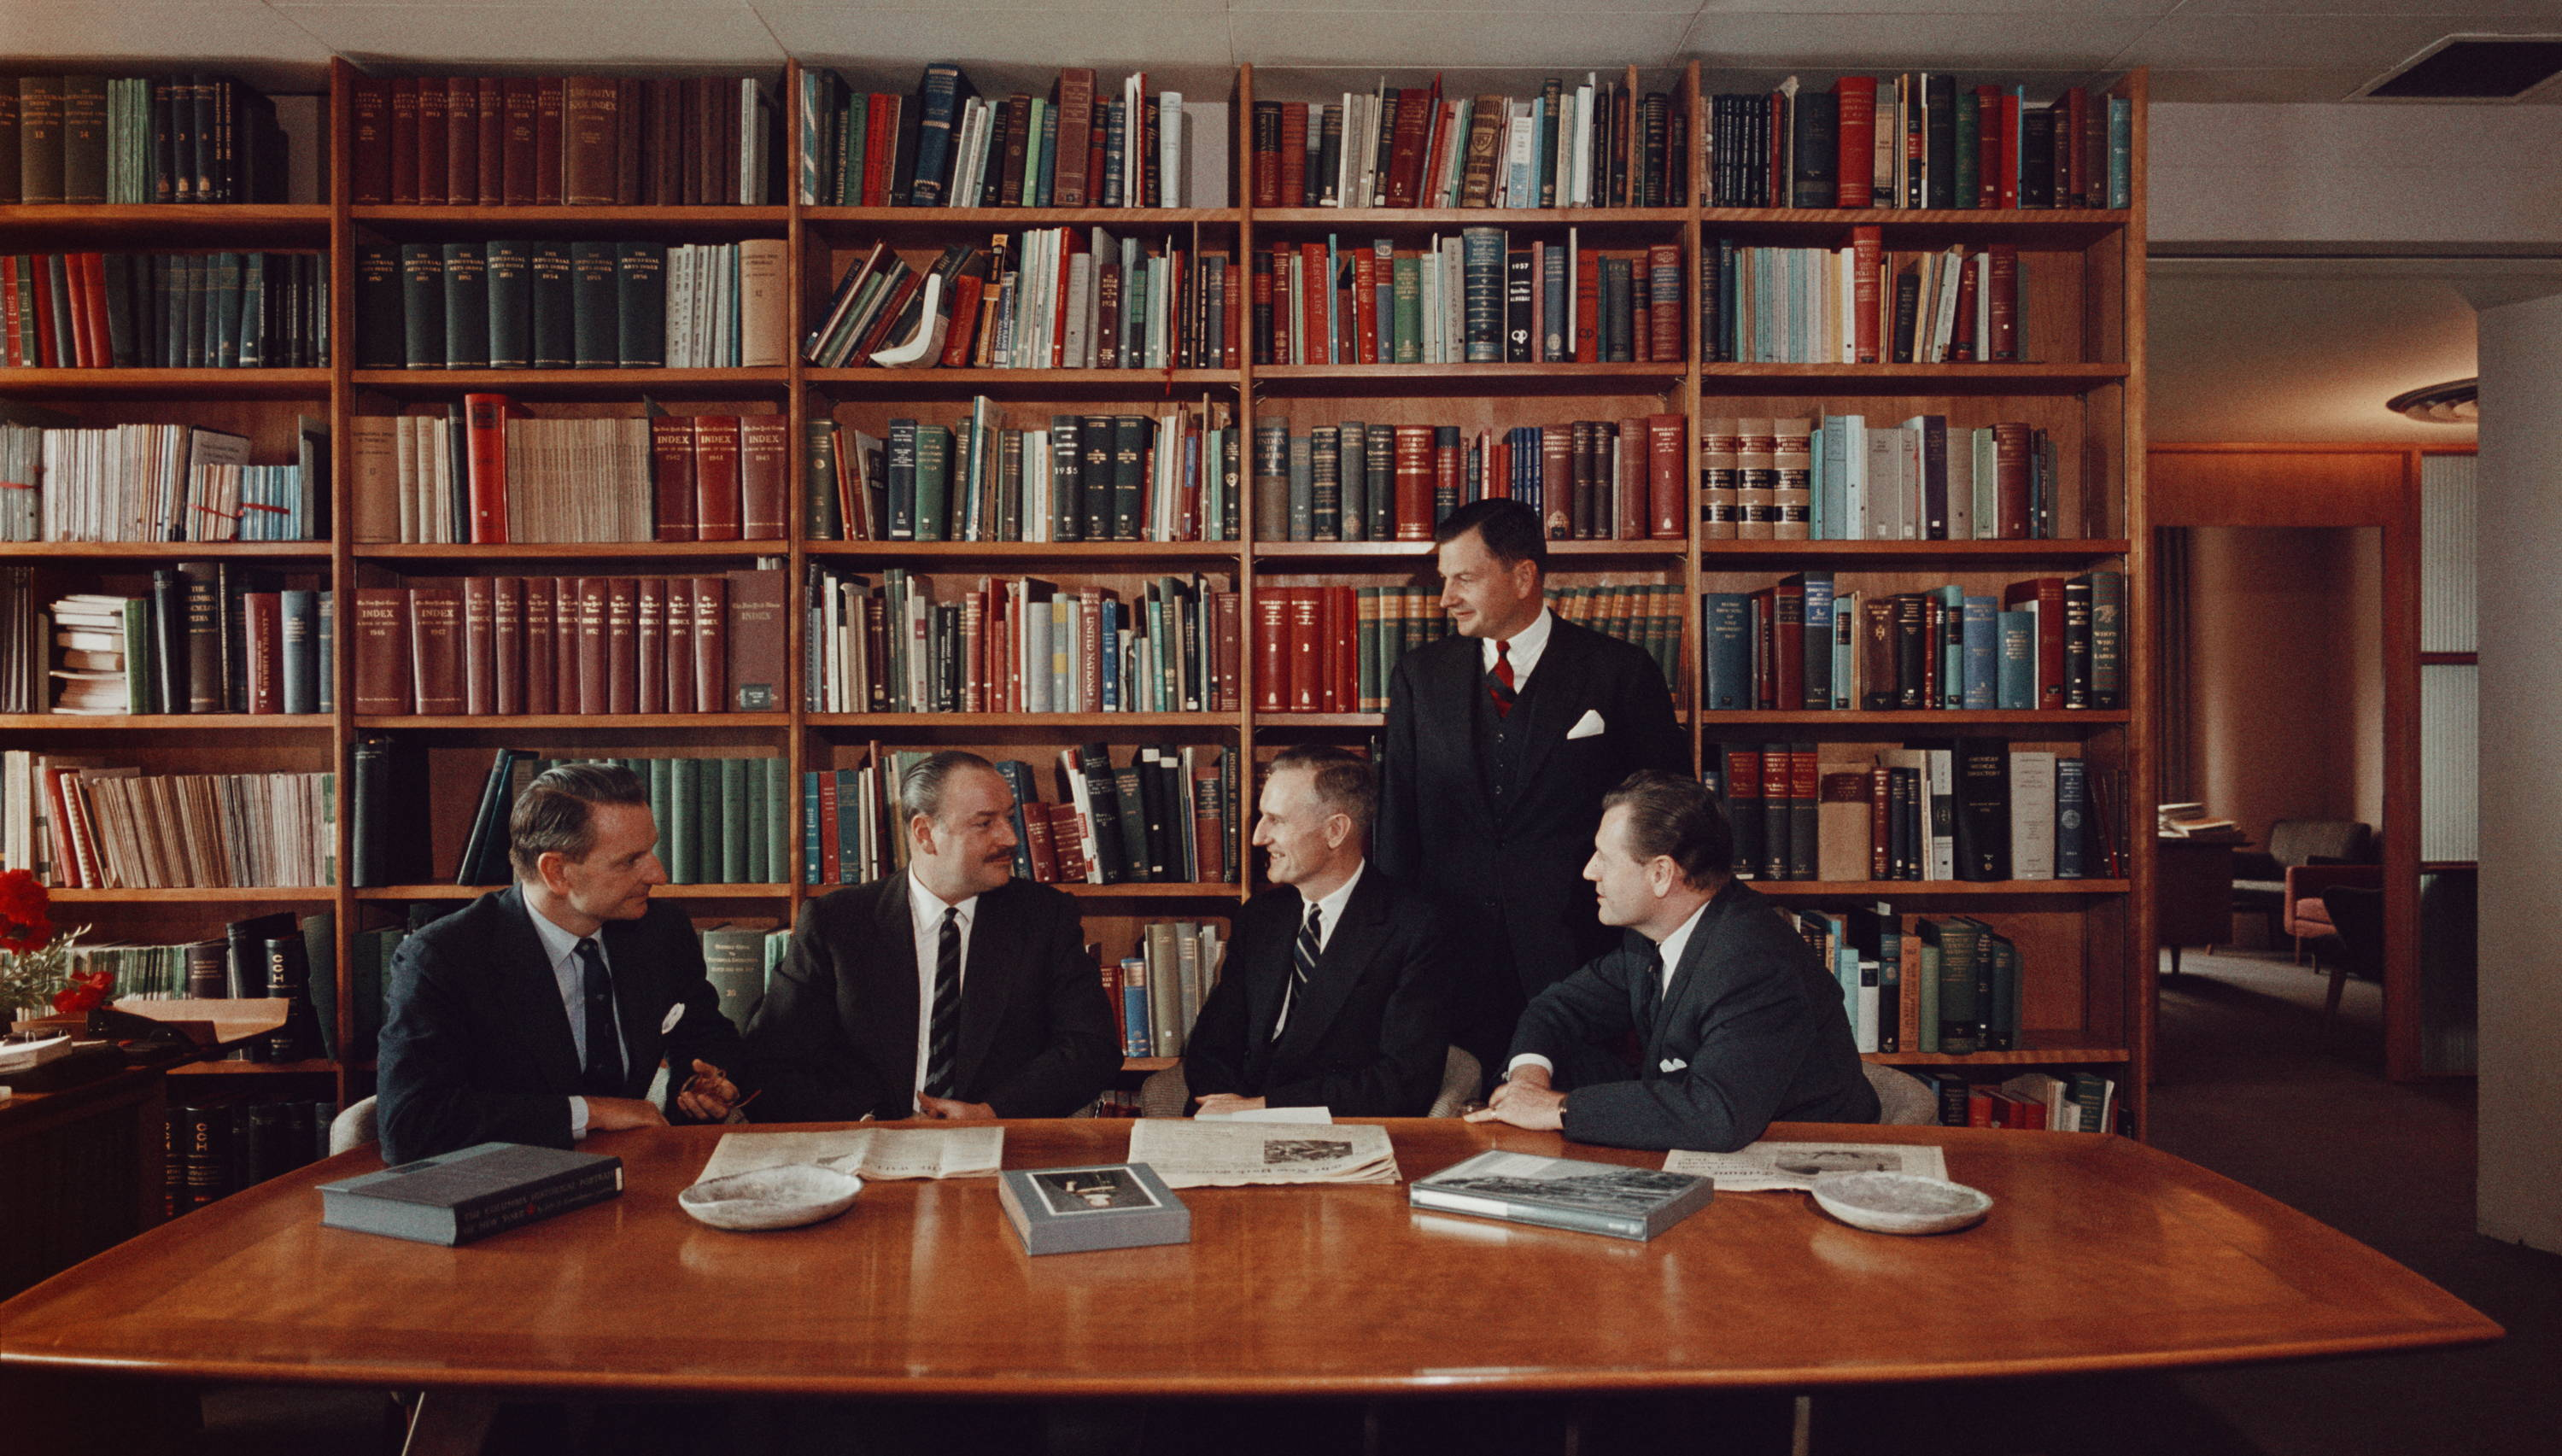 The Rockefeller brothers in their Radio City, New York office. Left to right, Laurance (1910 - 2004), Winthrop (1912 - 1973), John D. Rockefeller (1906 - 1978), David, and Nelson (1908 - 1979). Original Artwork: A Wonderful Time - Slim Aarons (Photo by Slim Aarons/Getty Images)